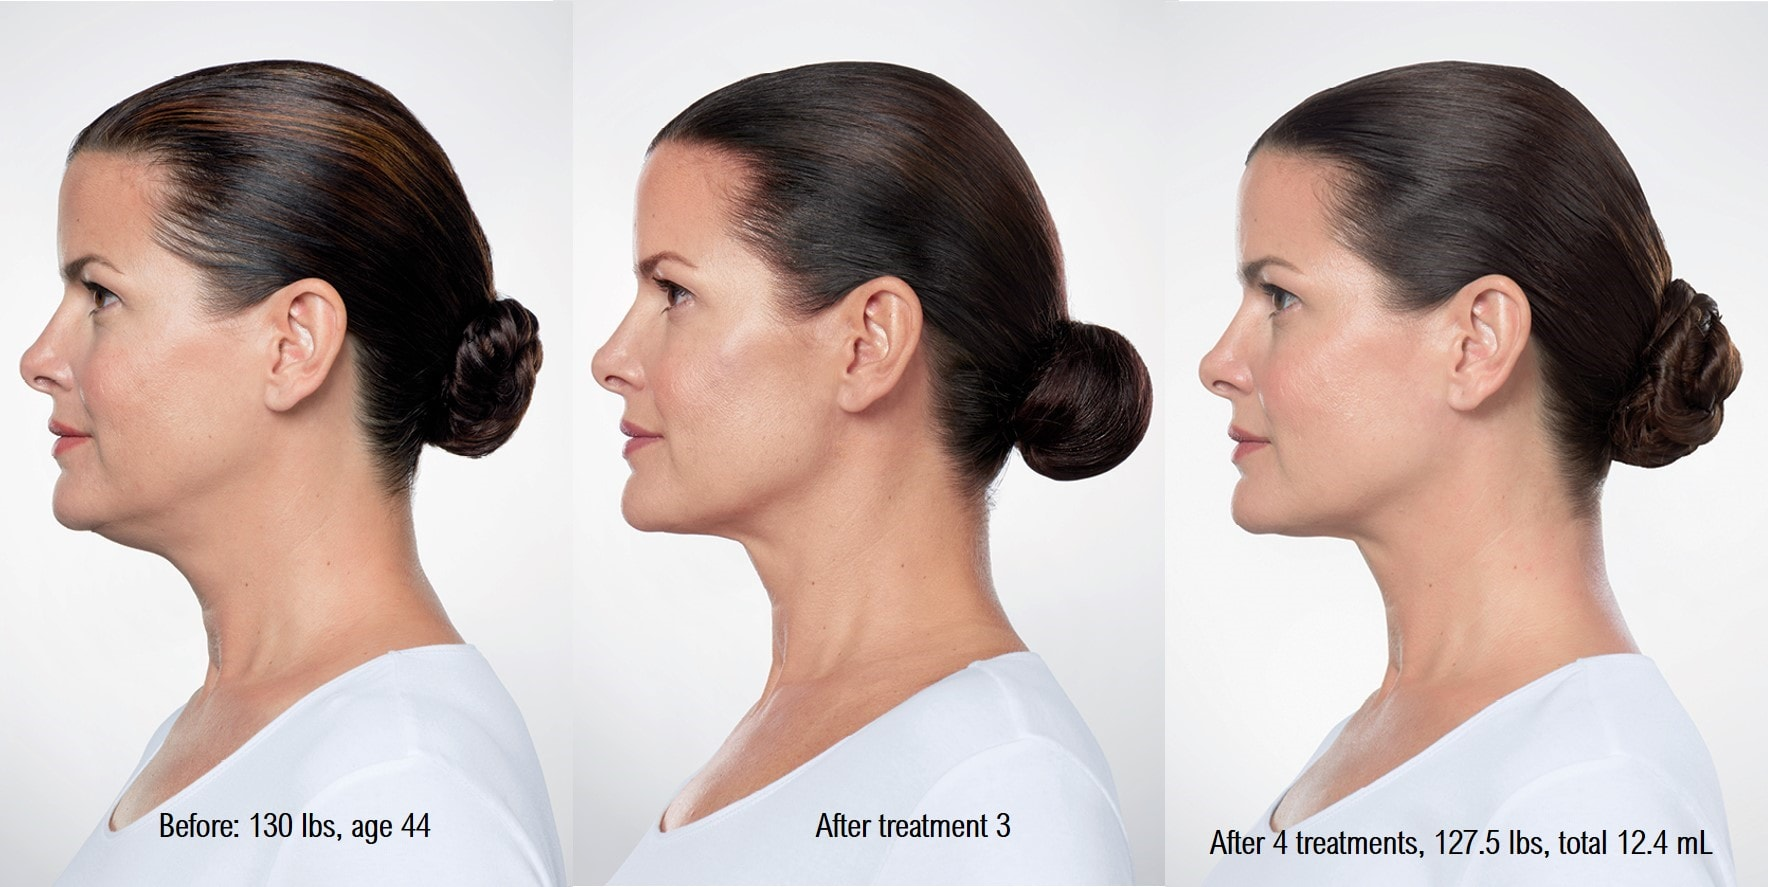 kybella-woman-before-after-min.jpg